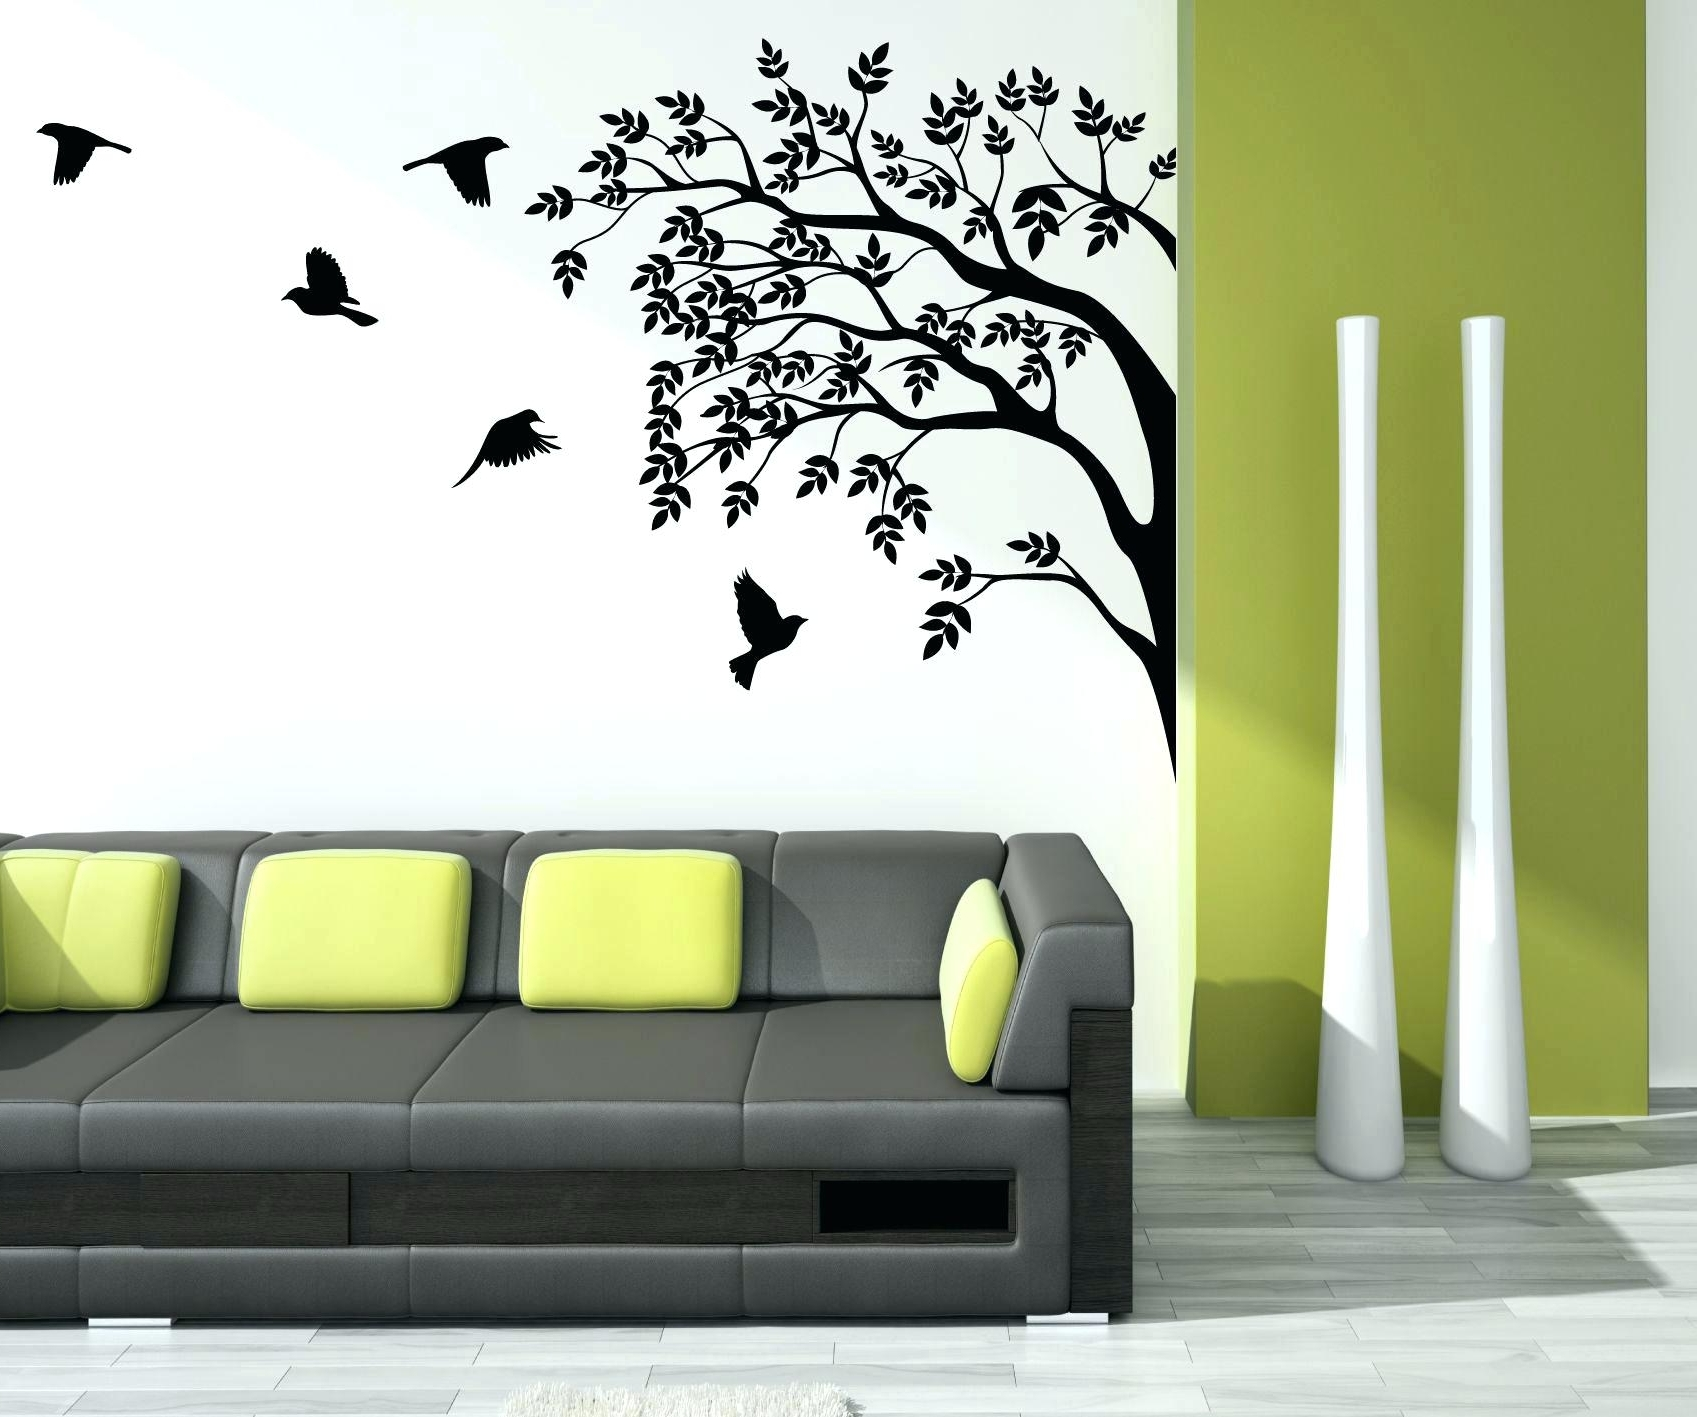 Tree Of Life Decal For Walls Wall Ideas Wall Sticker Art Vinyl In Favorite Vinyl Wall Art Tree (View 10 of 15)